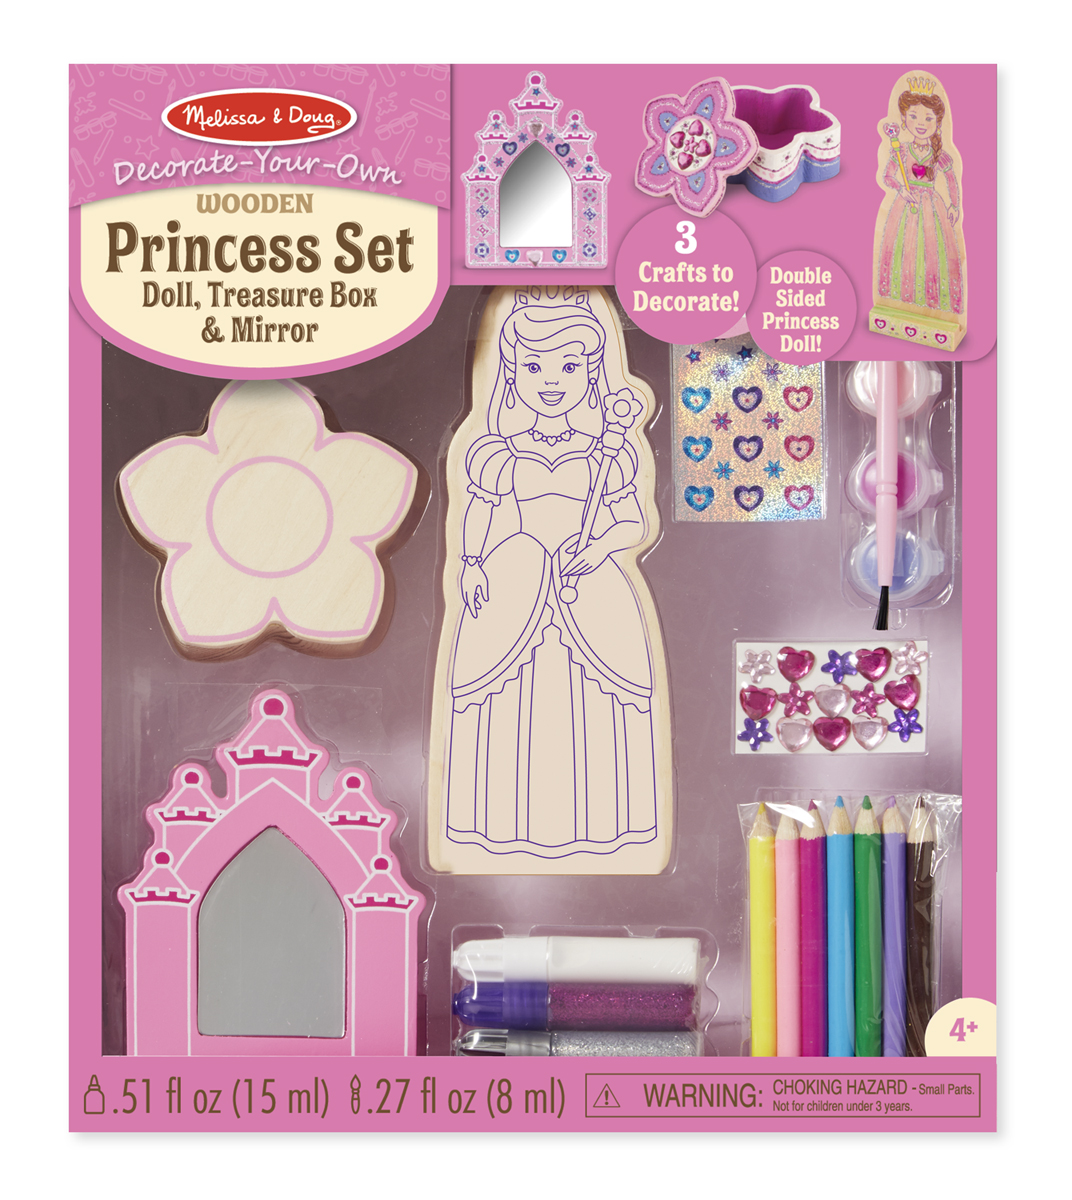 Melissa & Doug - Decorate-Your-Own Wooden Princess Set 096c52e74aa034a0d4d503e2ddf618d2